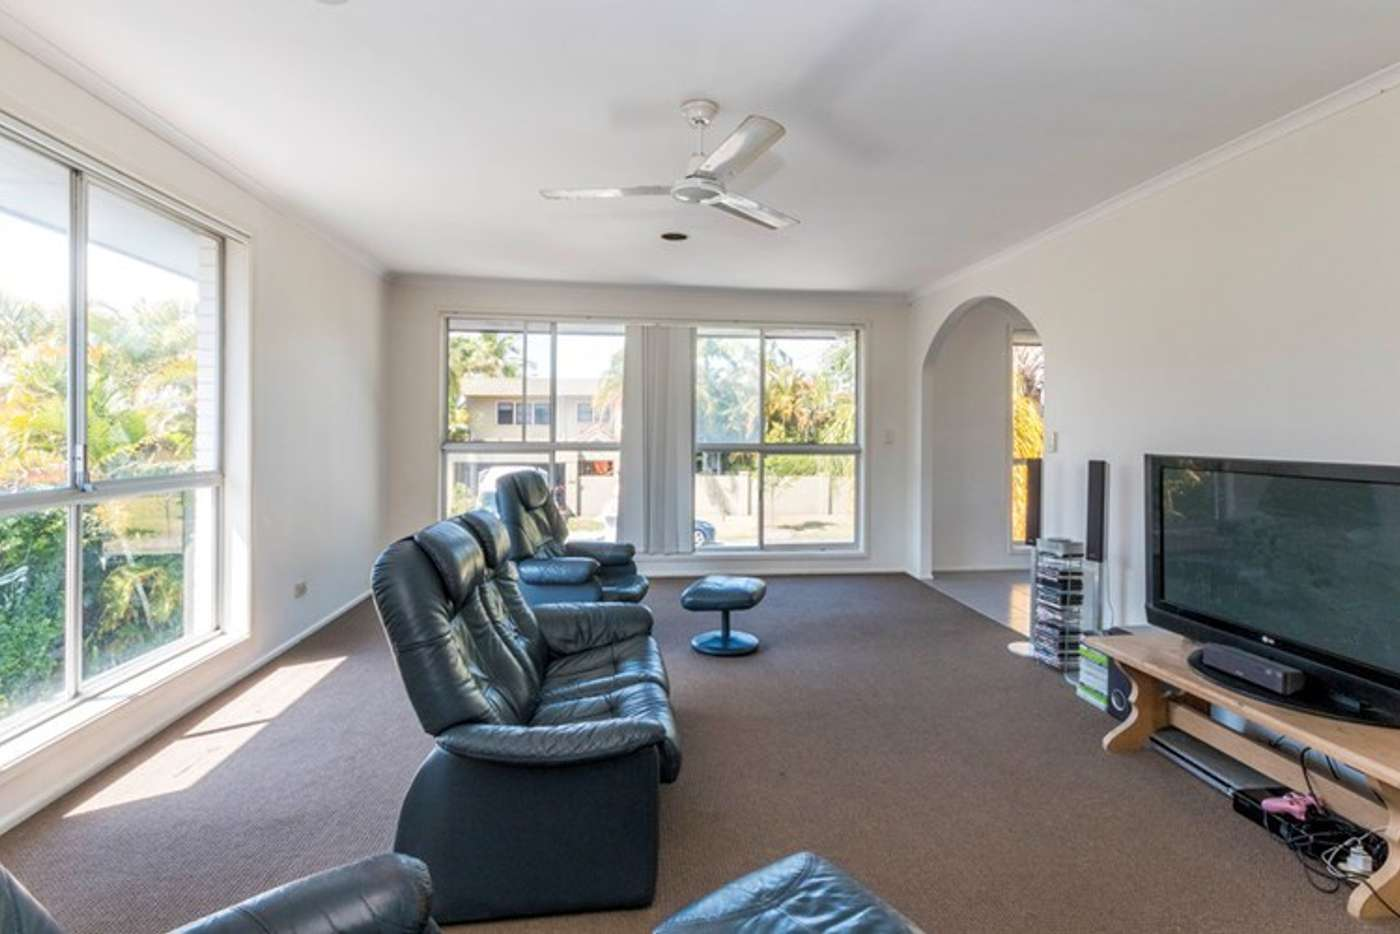 Seventh view of Homely house listing, 9 Sunset Boulevard, Surfers Paradise QLD 4217